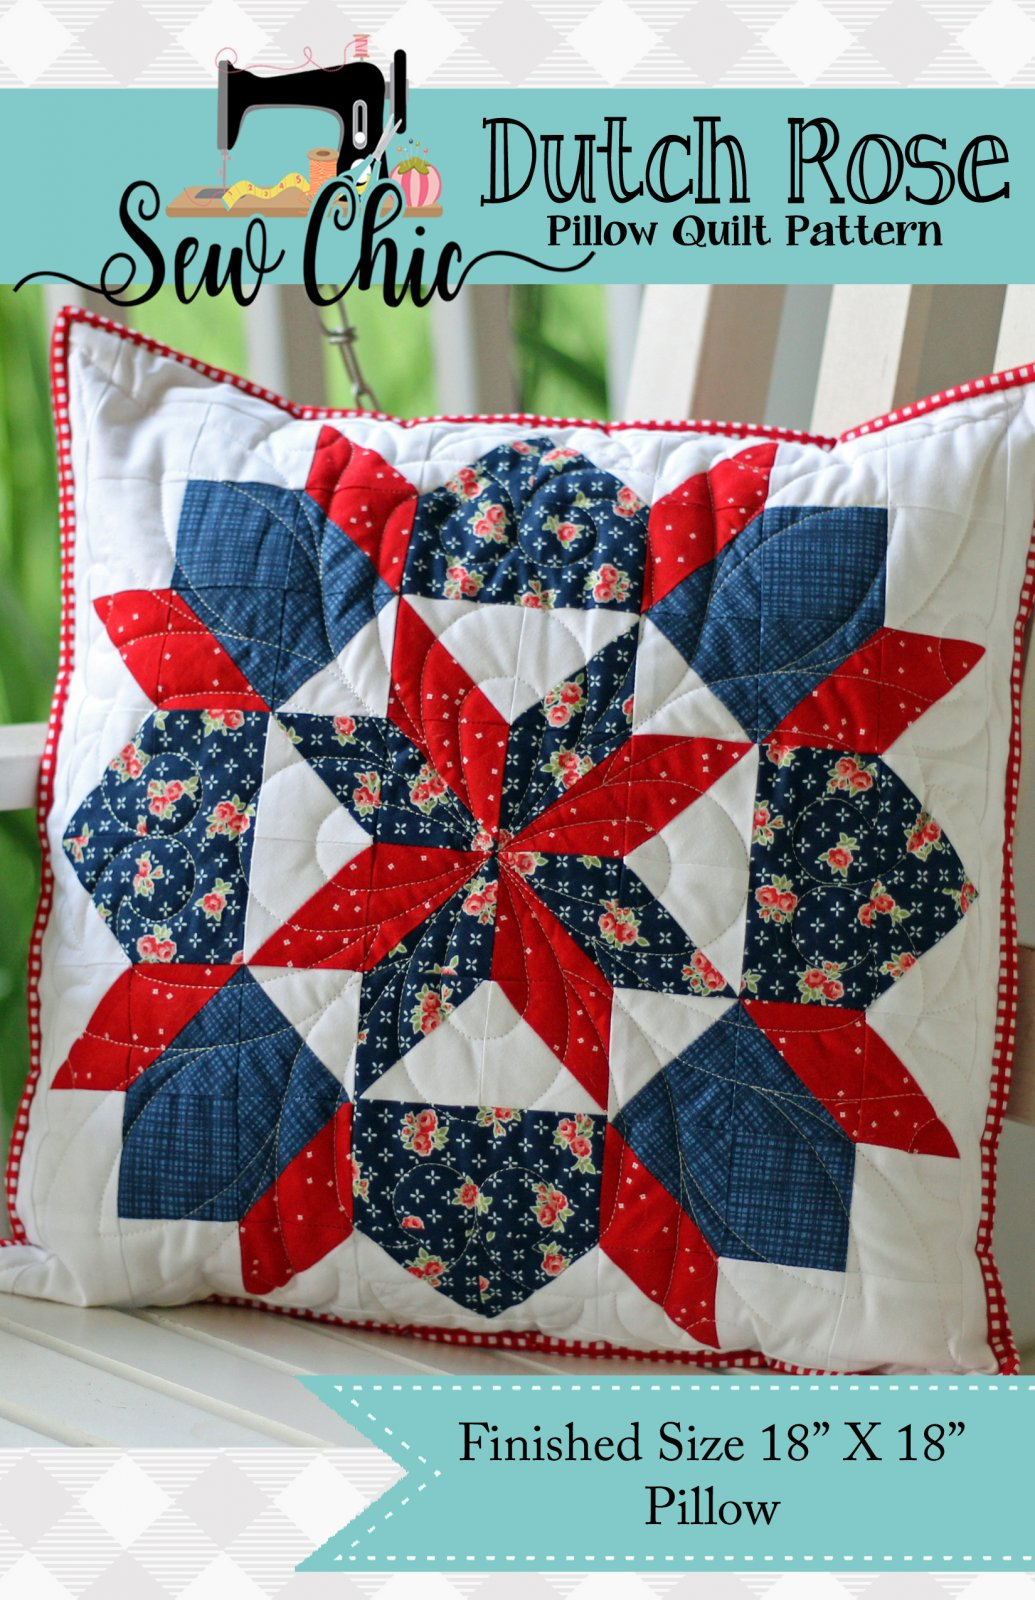 Dutch Rose Pillow Quilting Pattern By Sew Chic